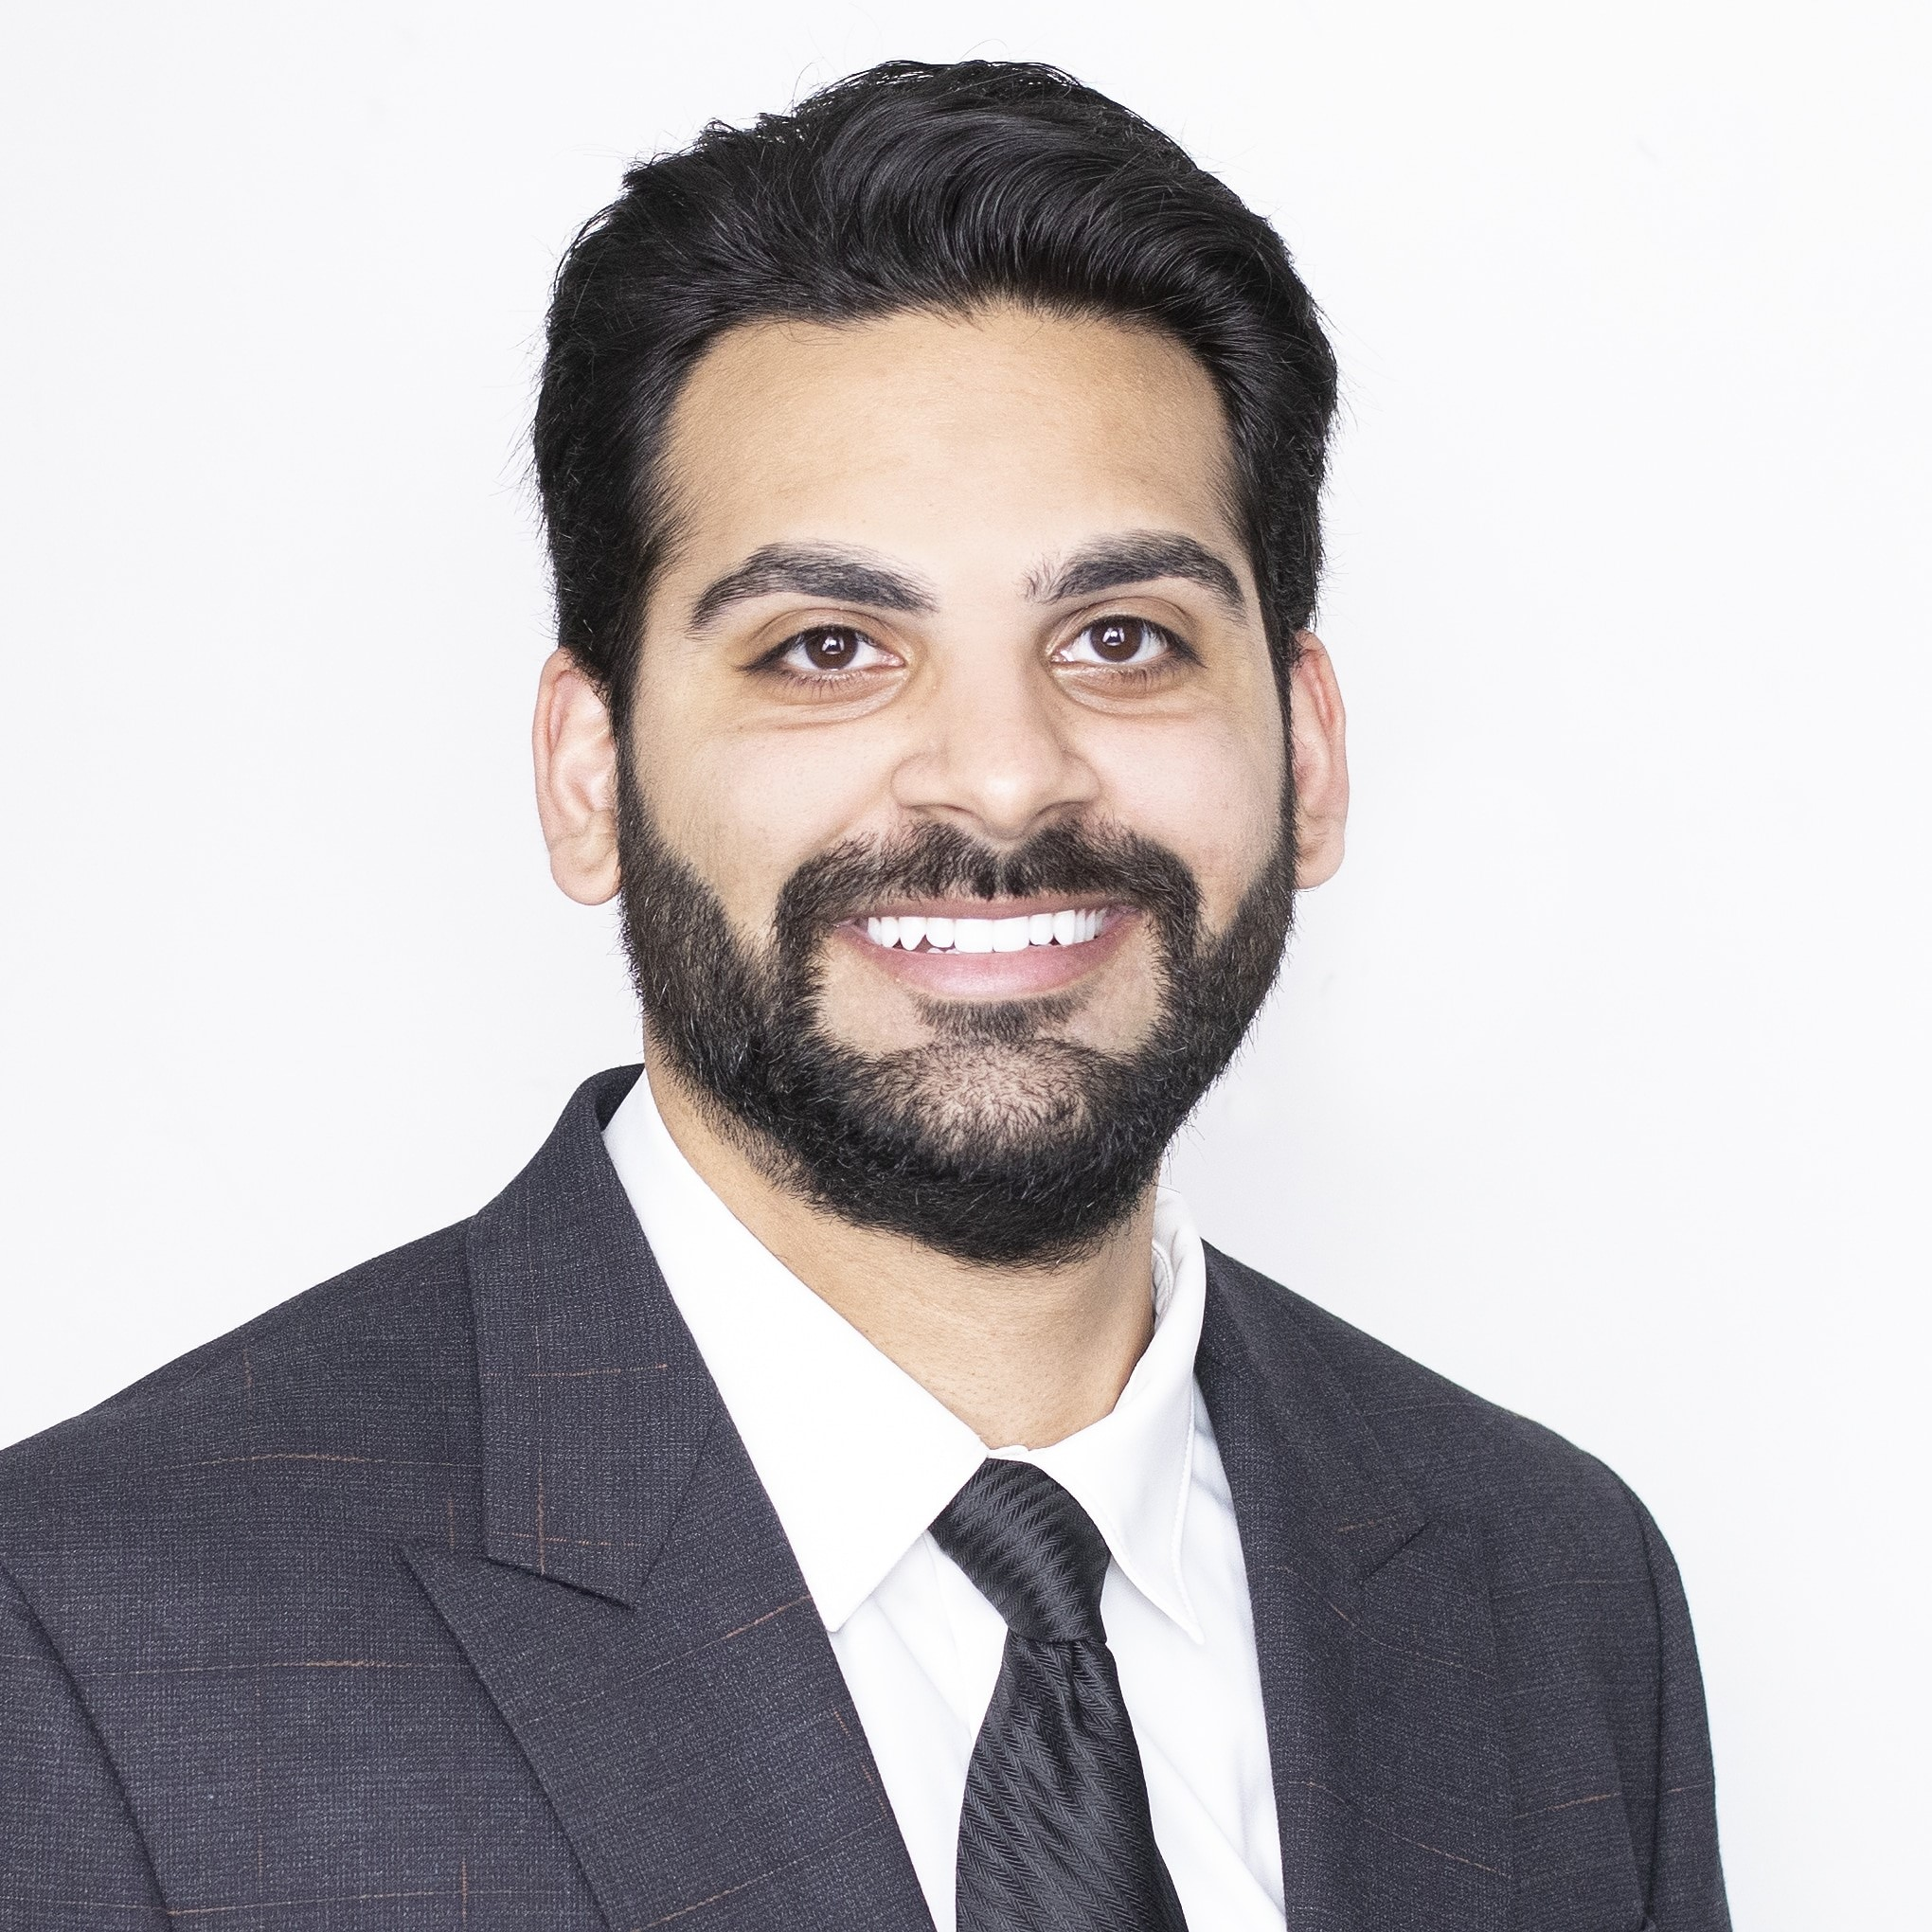 Ahmed smiling in suit with white background